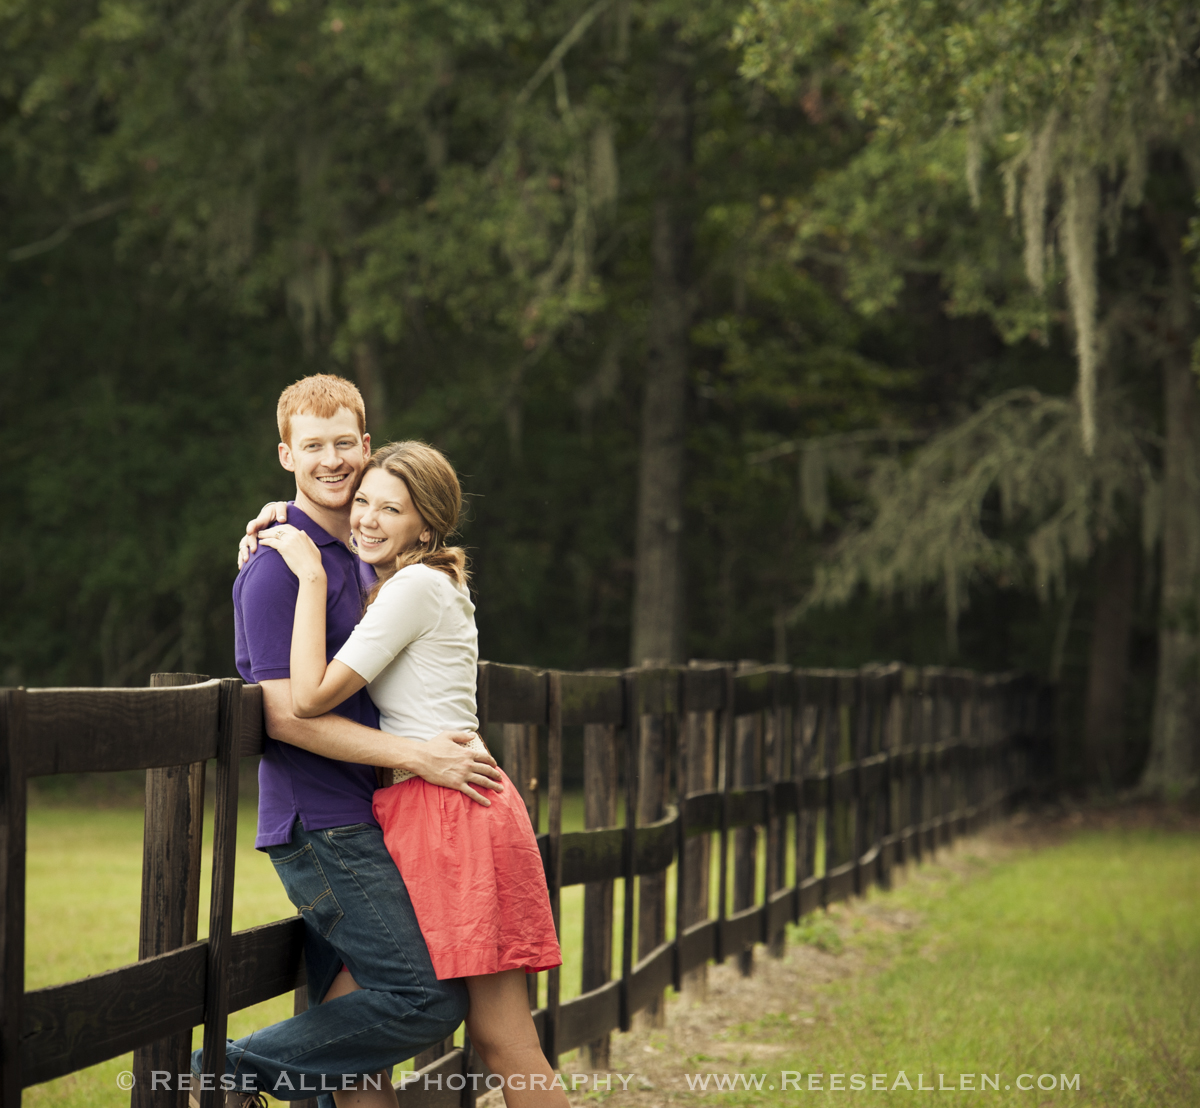 Reese Allen Photography-Top Rated Charleston fashion portrait and wedding photographer (11 of 24).jpg